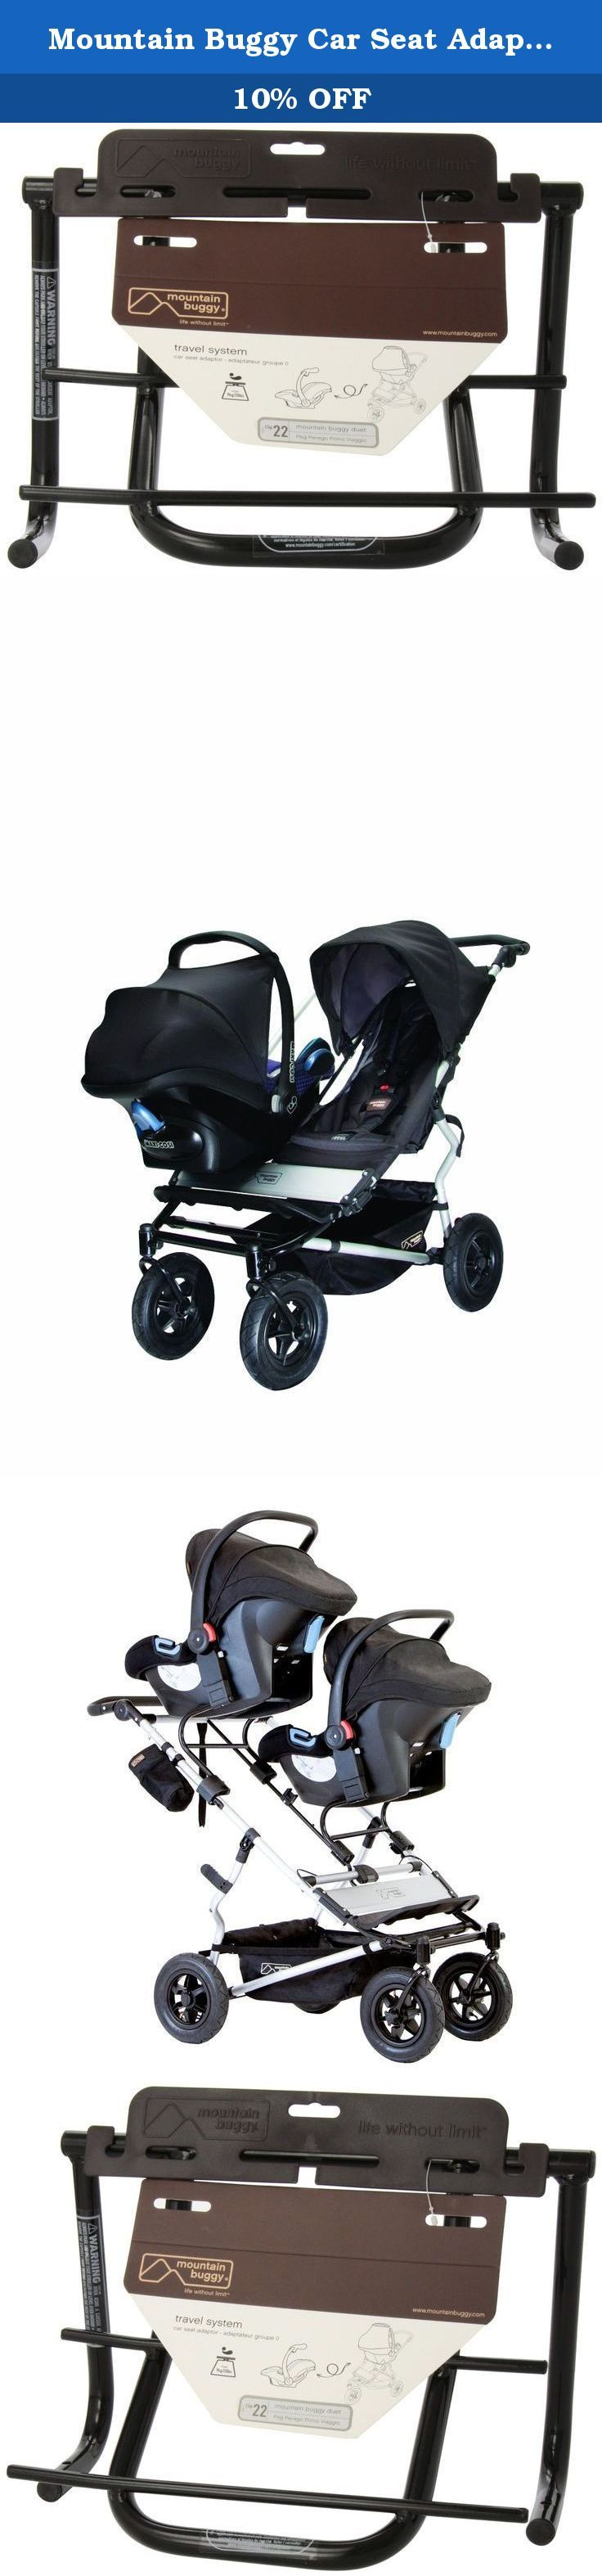 Mountain Buggy Car Seat Adapter for Peg Perego Primo